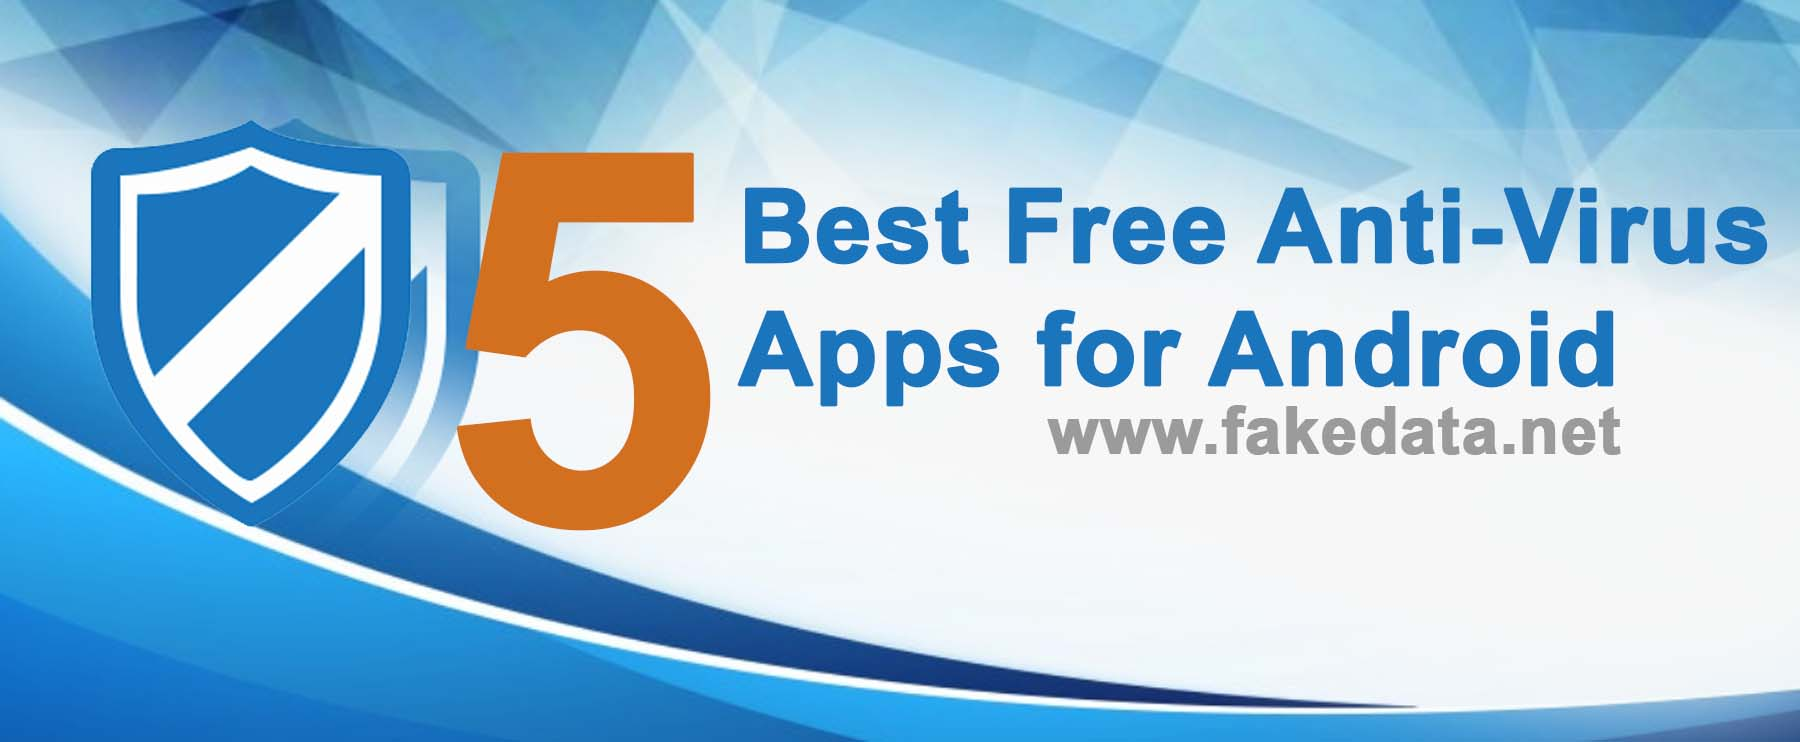 5 Best Free Anti virus apps for Android